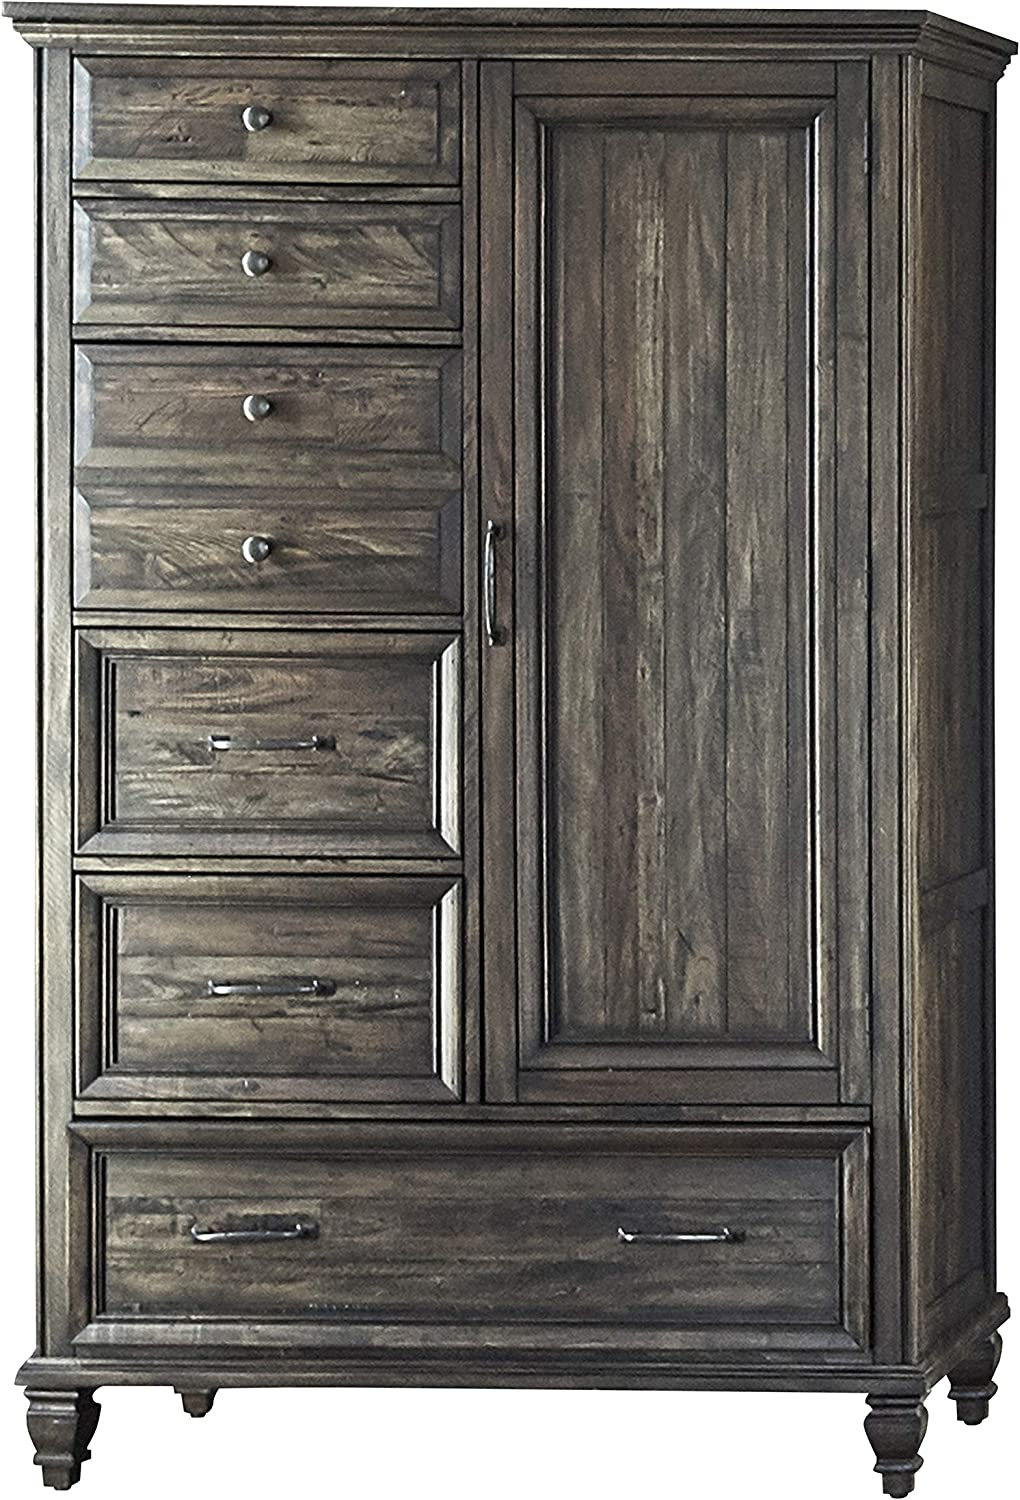 Coaster Home Furnishings Avenue 6-Drawer Door Weathered Burnished Brown Chest